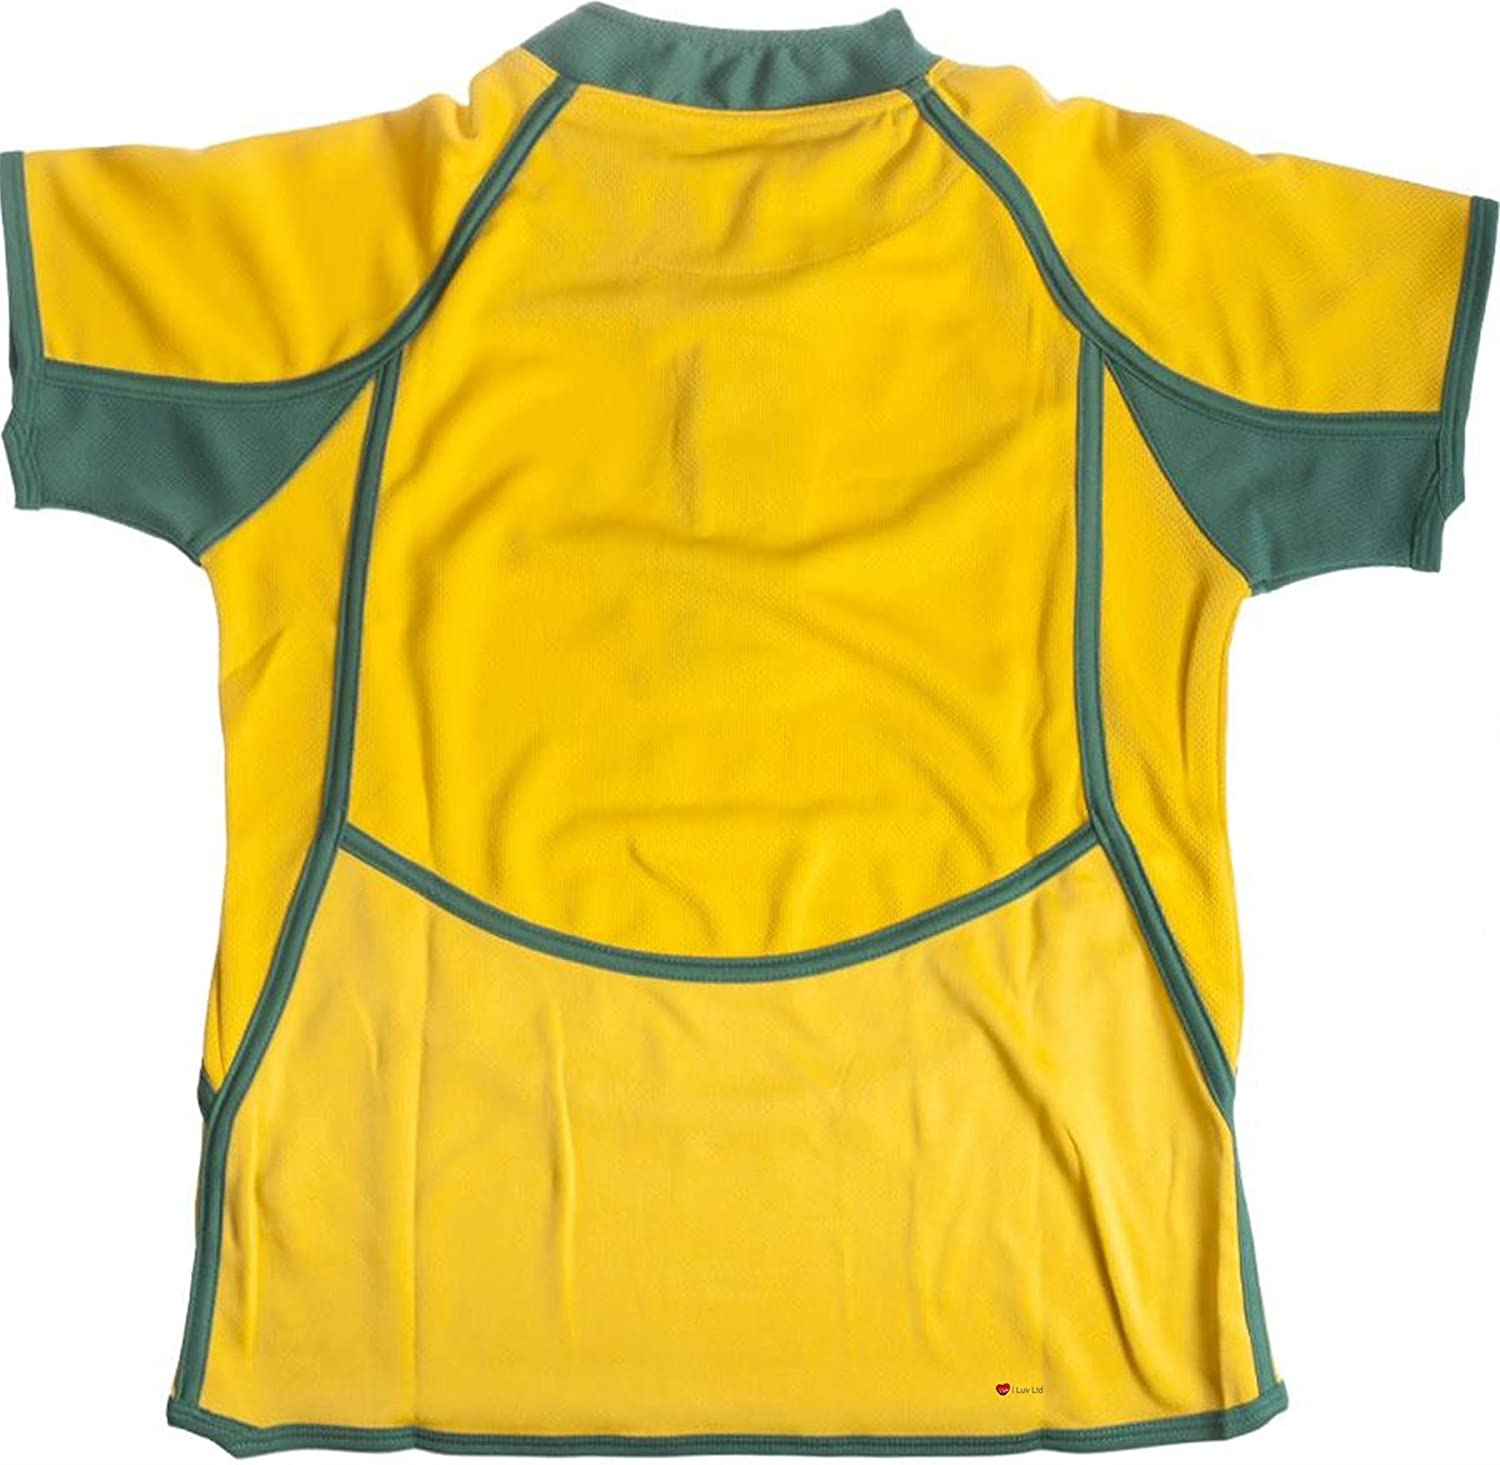 Kids Cool Dry Style Rugby Shirt in Australia Colours Size 5-6 Years